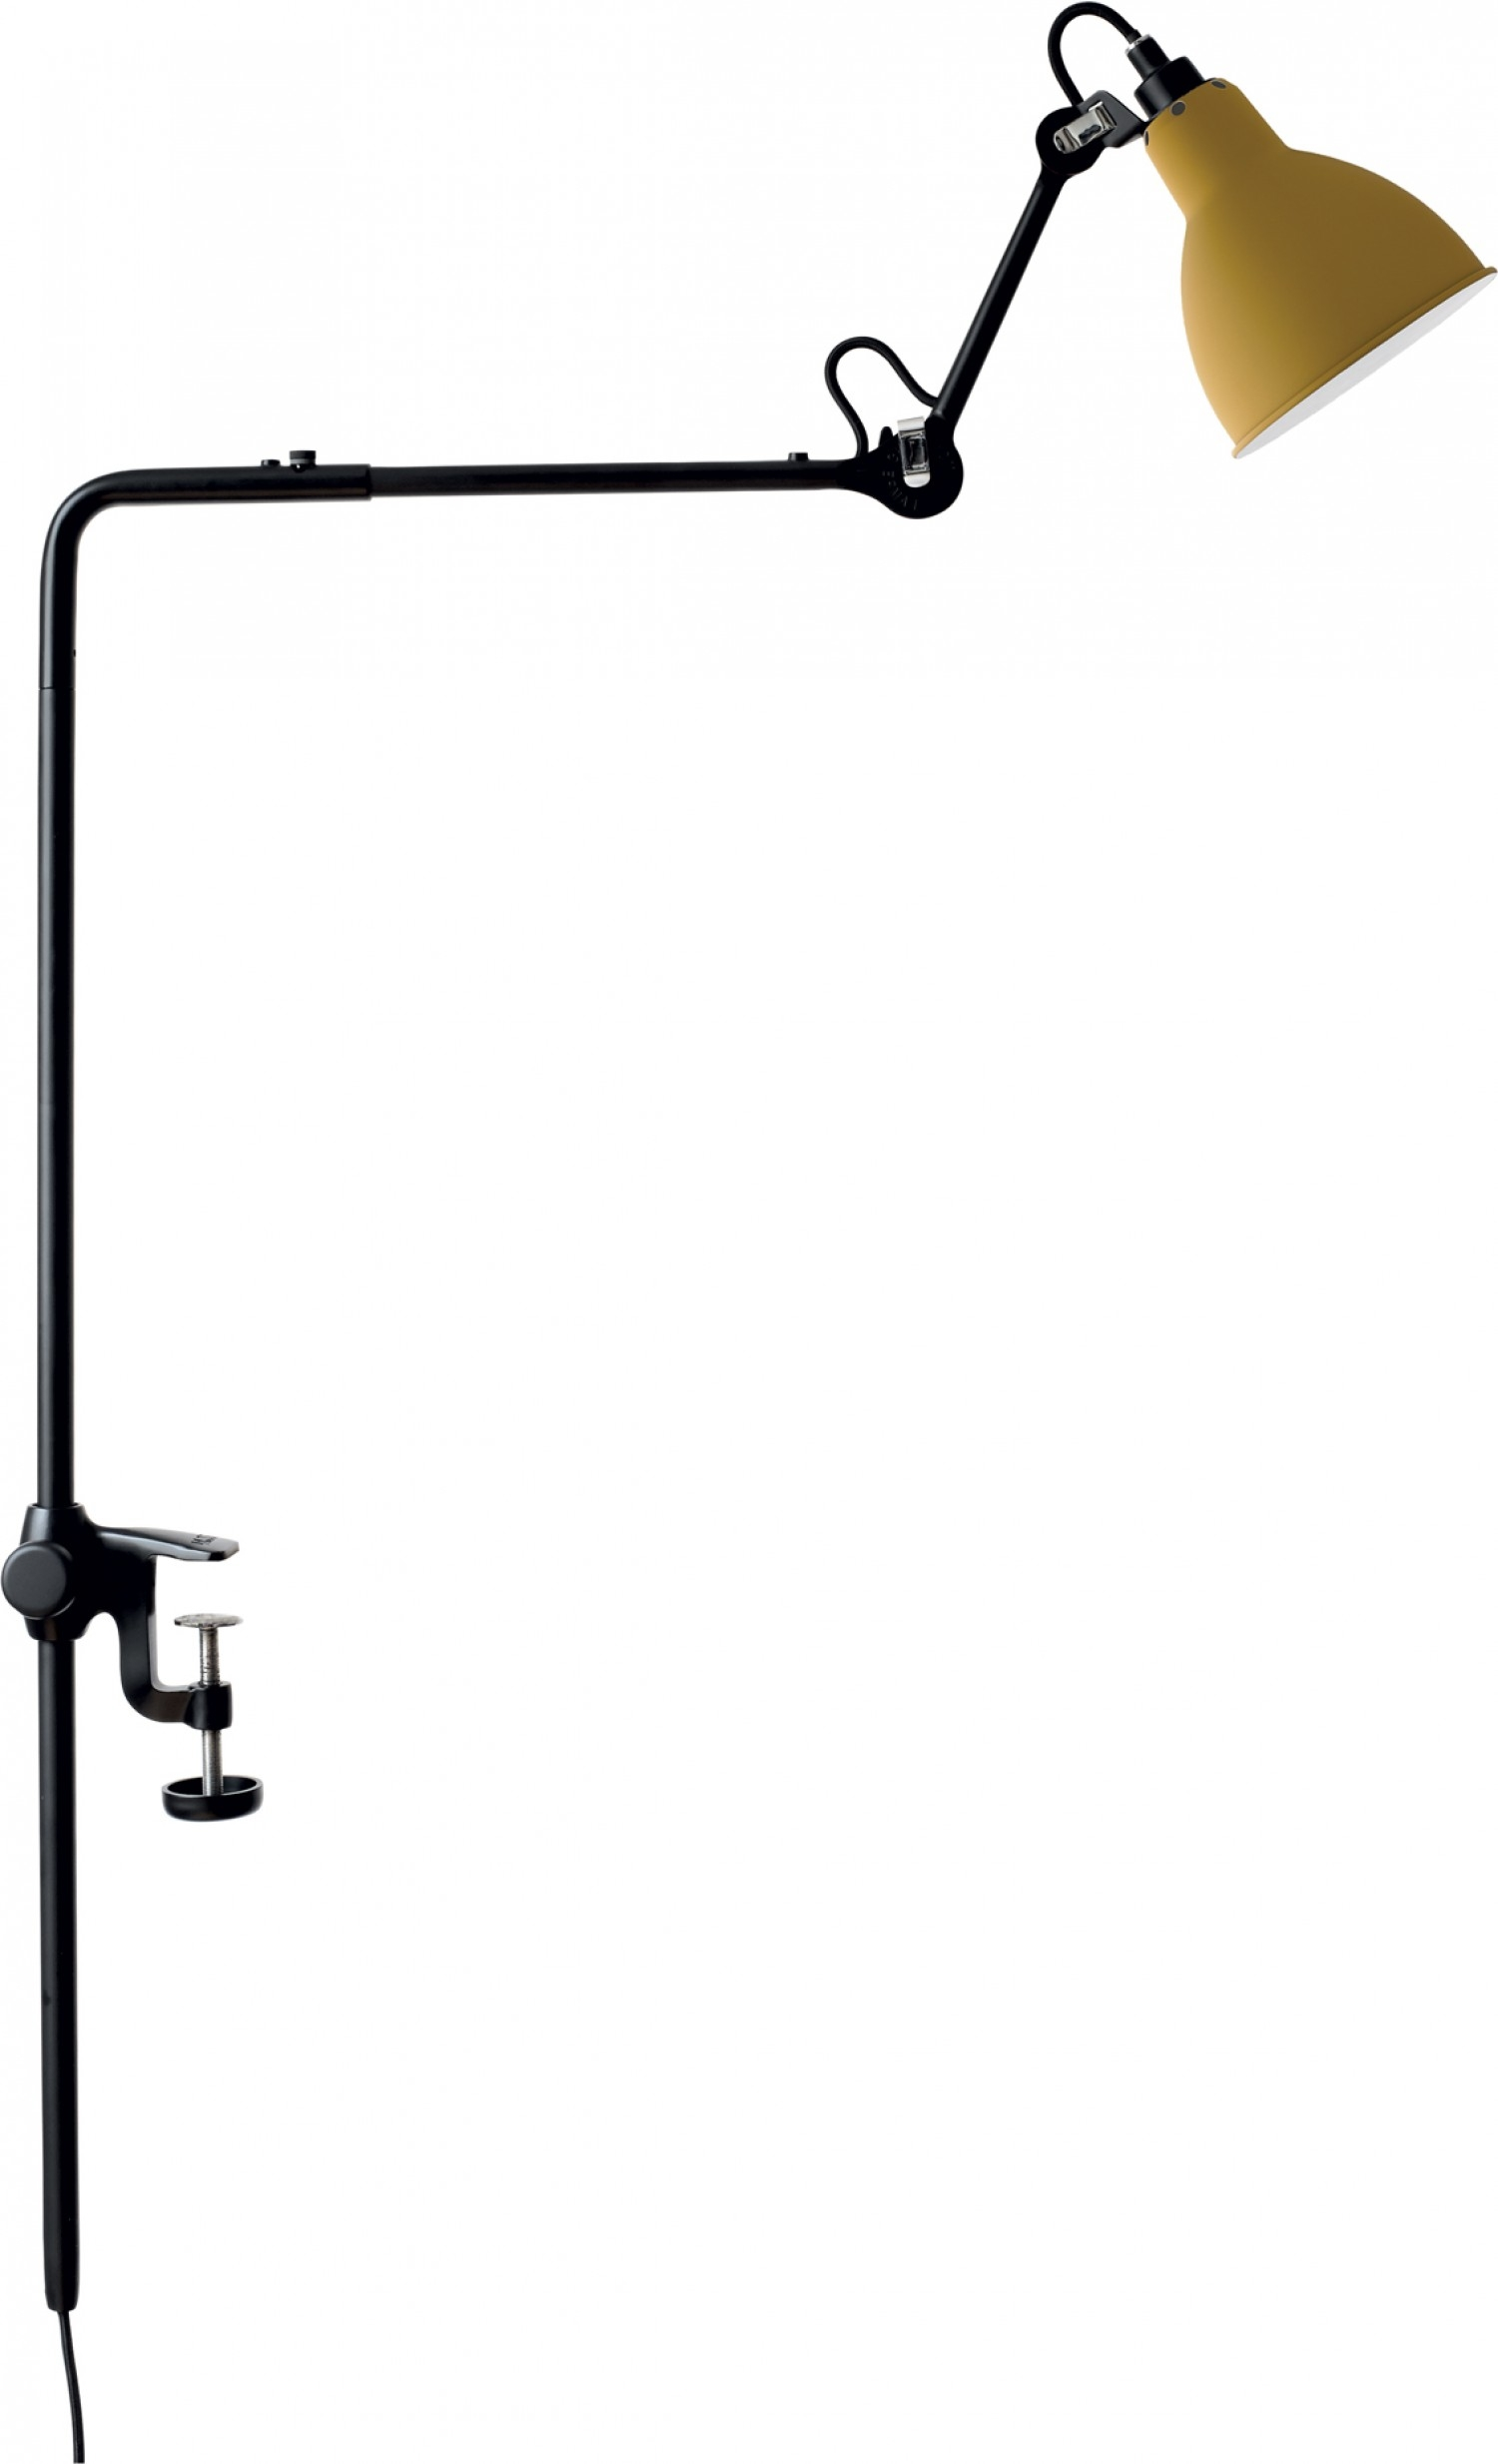 Lampe Gras N226 Dcw Éditions Lampe Gras Lamp With Clamp